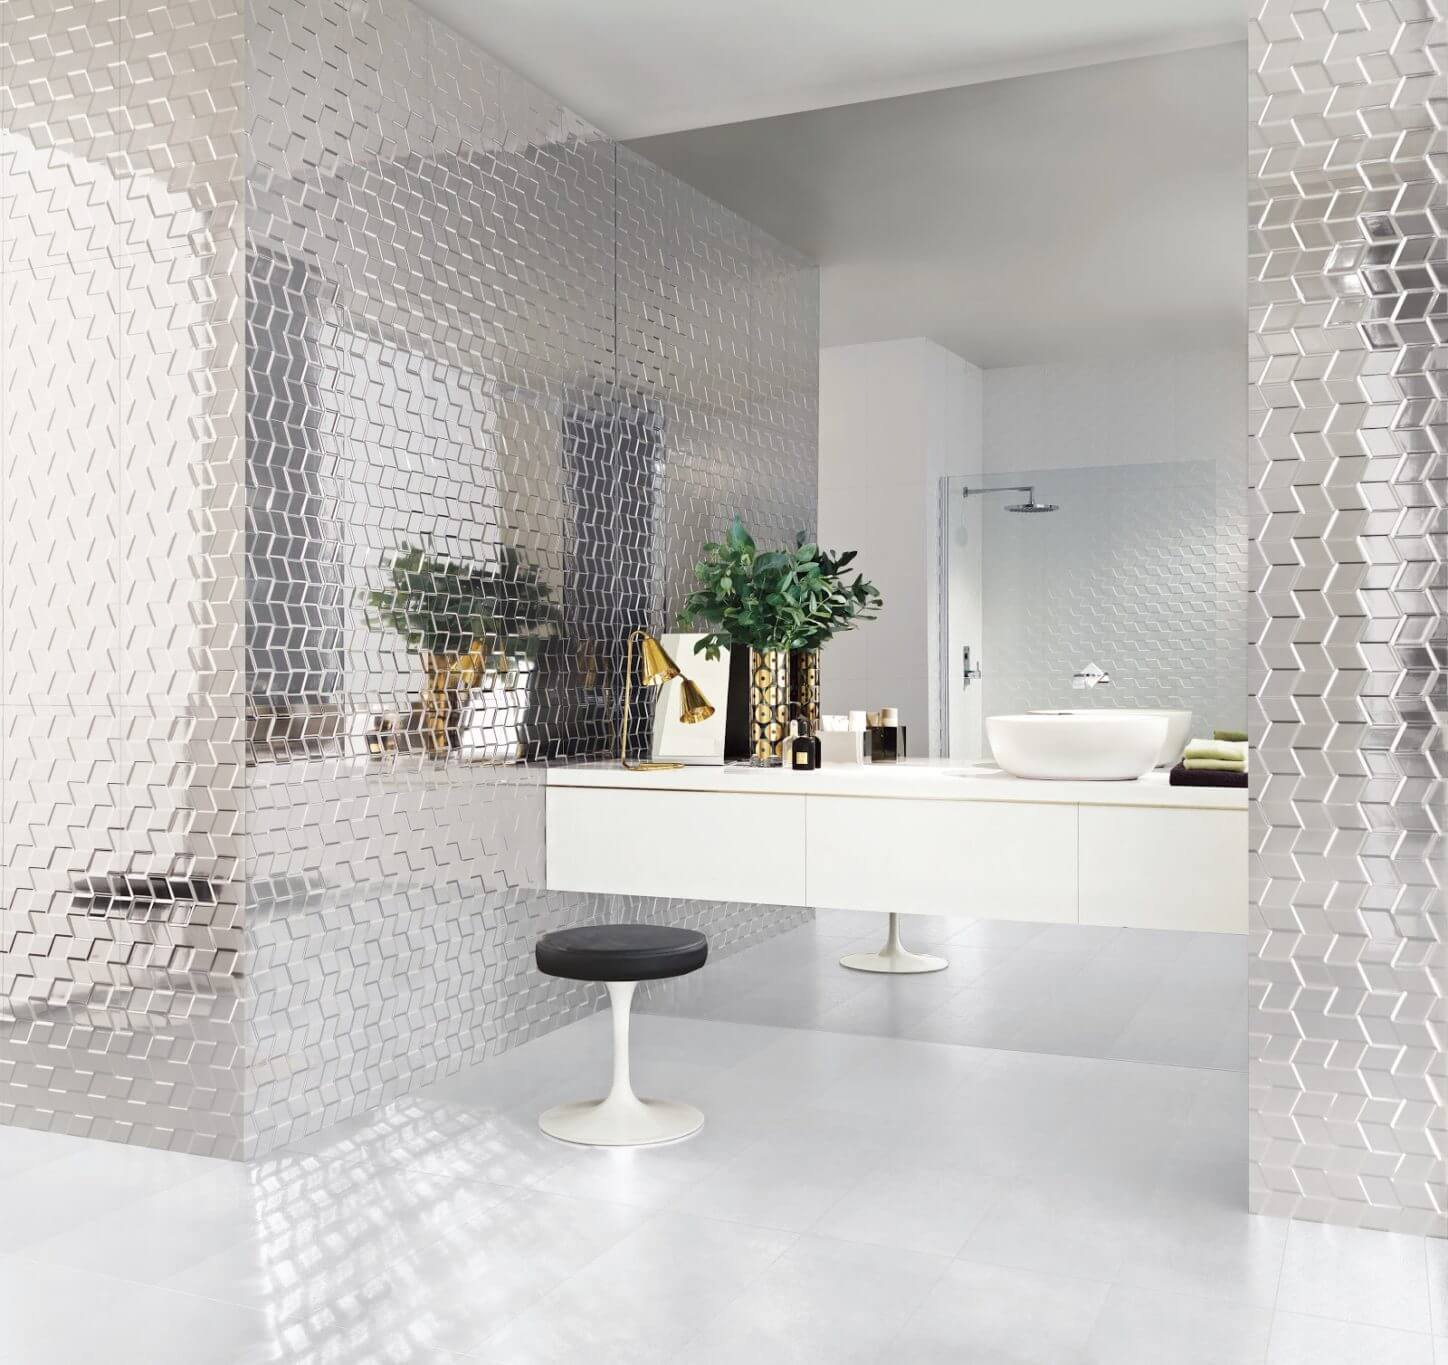 Glass Tiles In Bathroom: 40 Free Shower Tile Ideas (Tips For Choosing Tile)